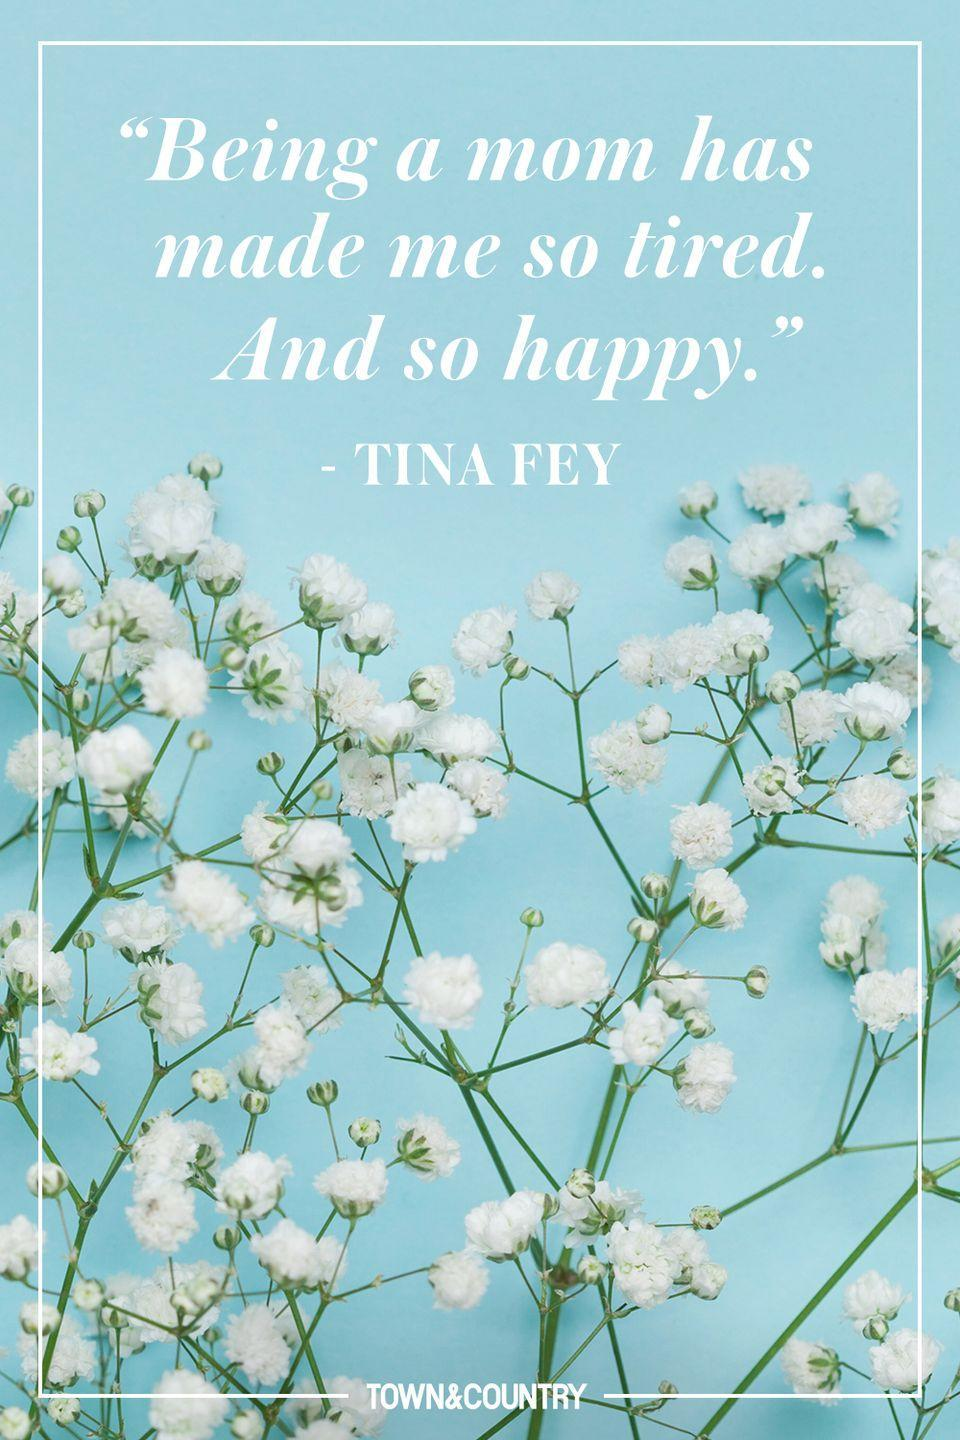 """<p>""""Being a mom has made me so tired. And so happy.""""</p><p>- Tina Fey</p>"""